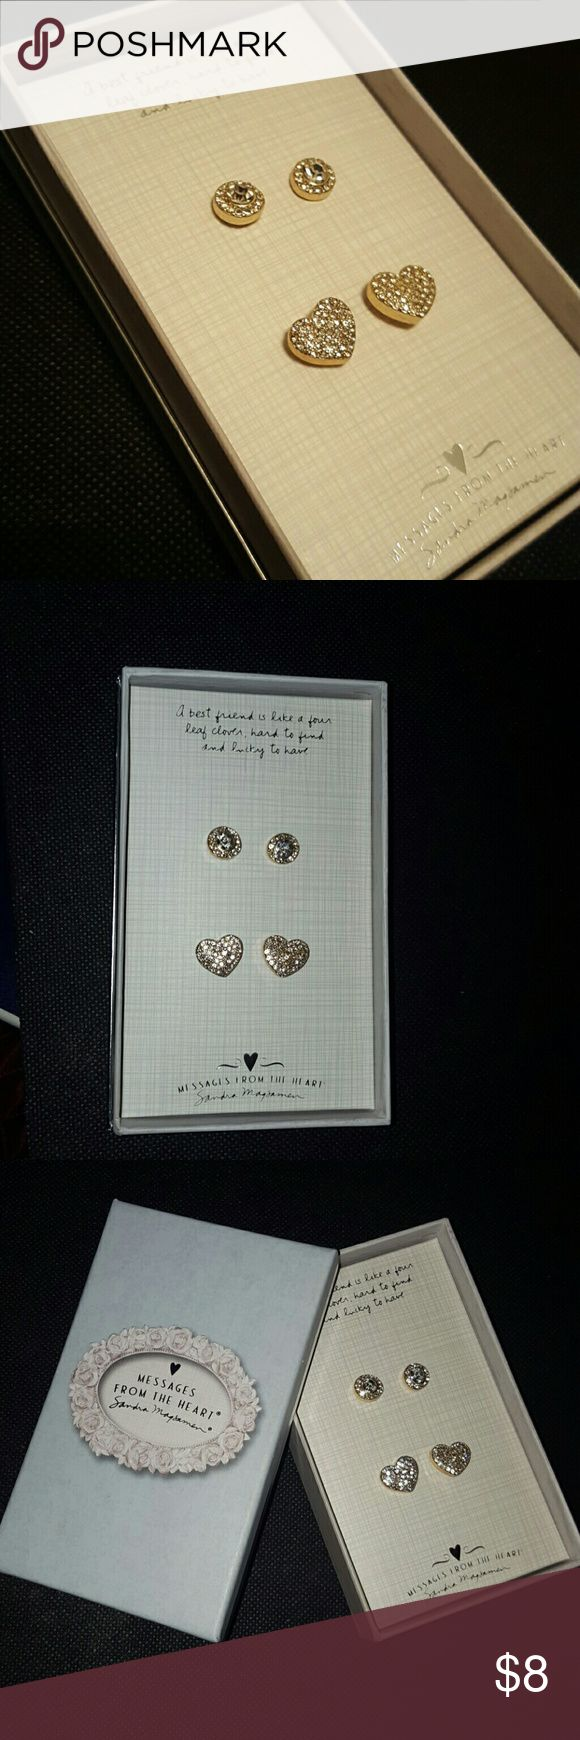 New in box! Awesome gift for your best friend! Messages from the heart by Sandra Magsamen, 2 sets of earrings, round and heart shaped, goldtone w/ faux diamond accents, perfect unworn condition! Sandra Magsamen  Jewelry Earrings